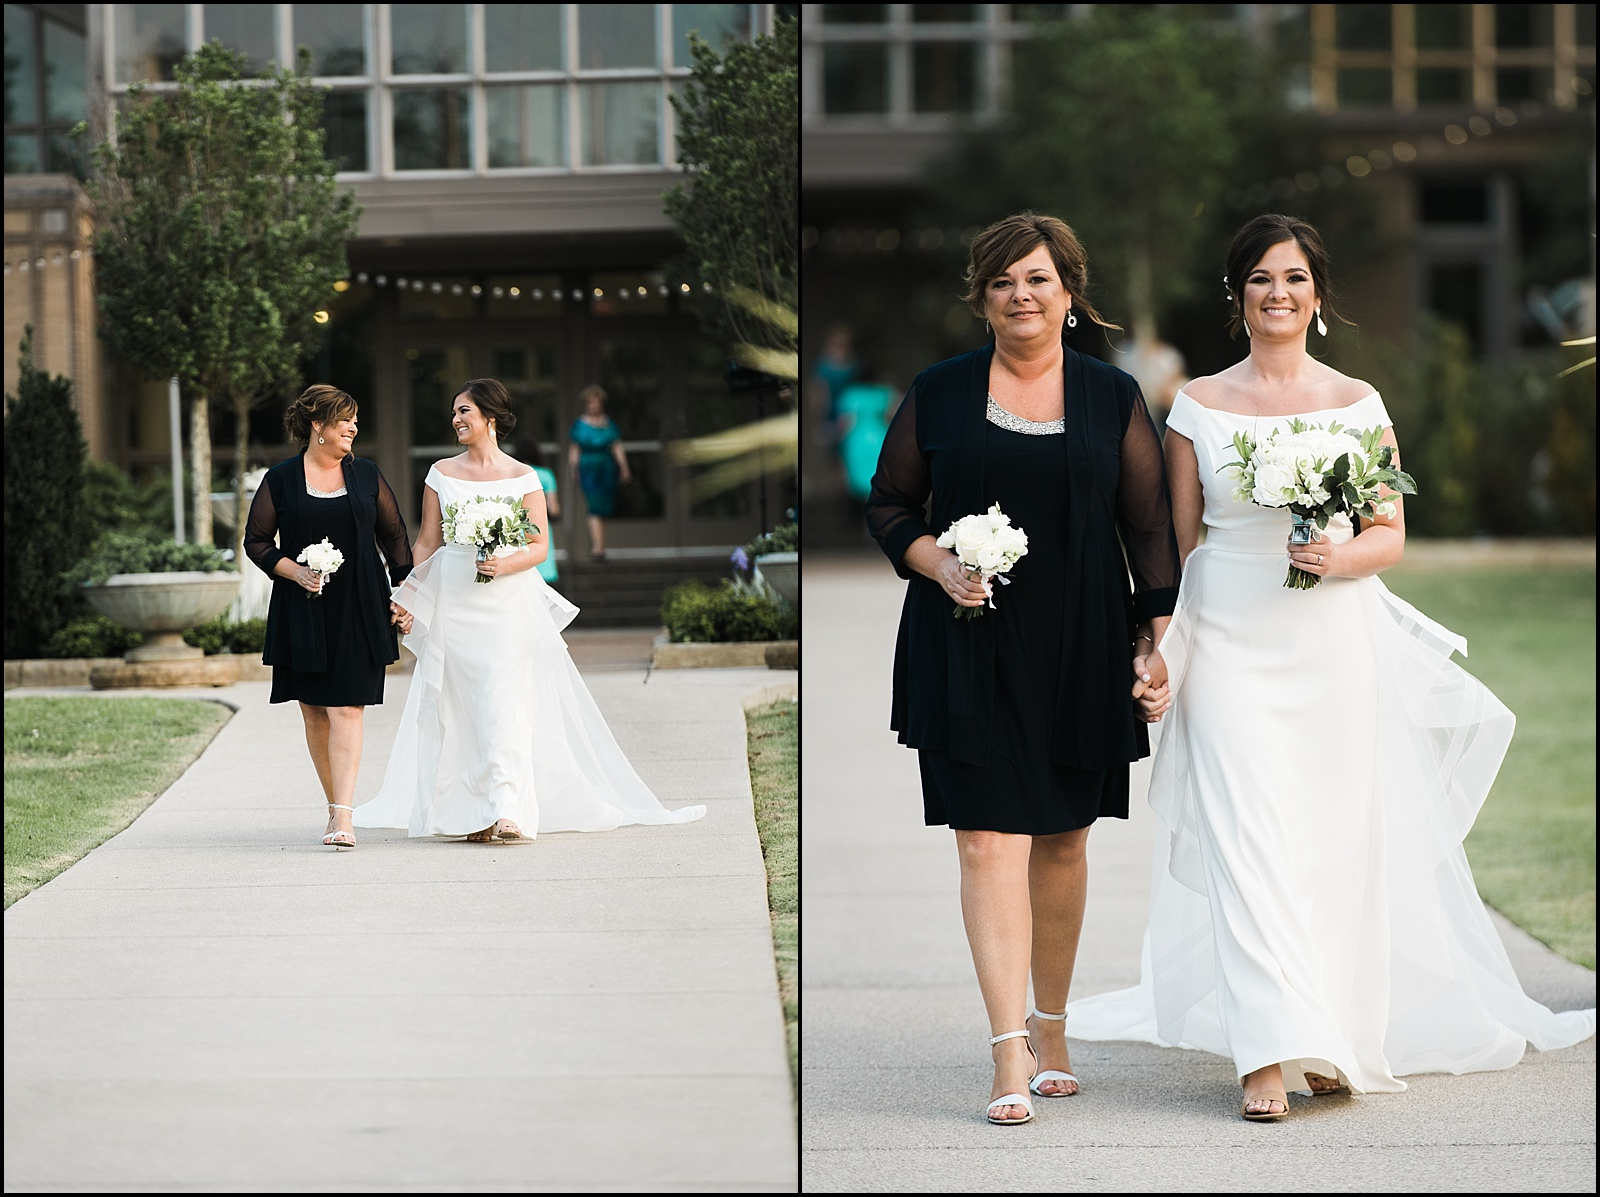 Bride and mother walking down aisle